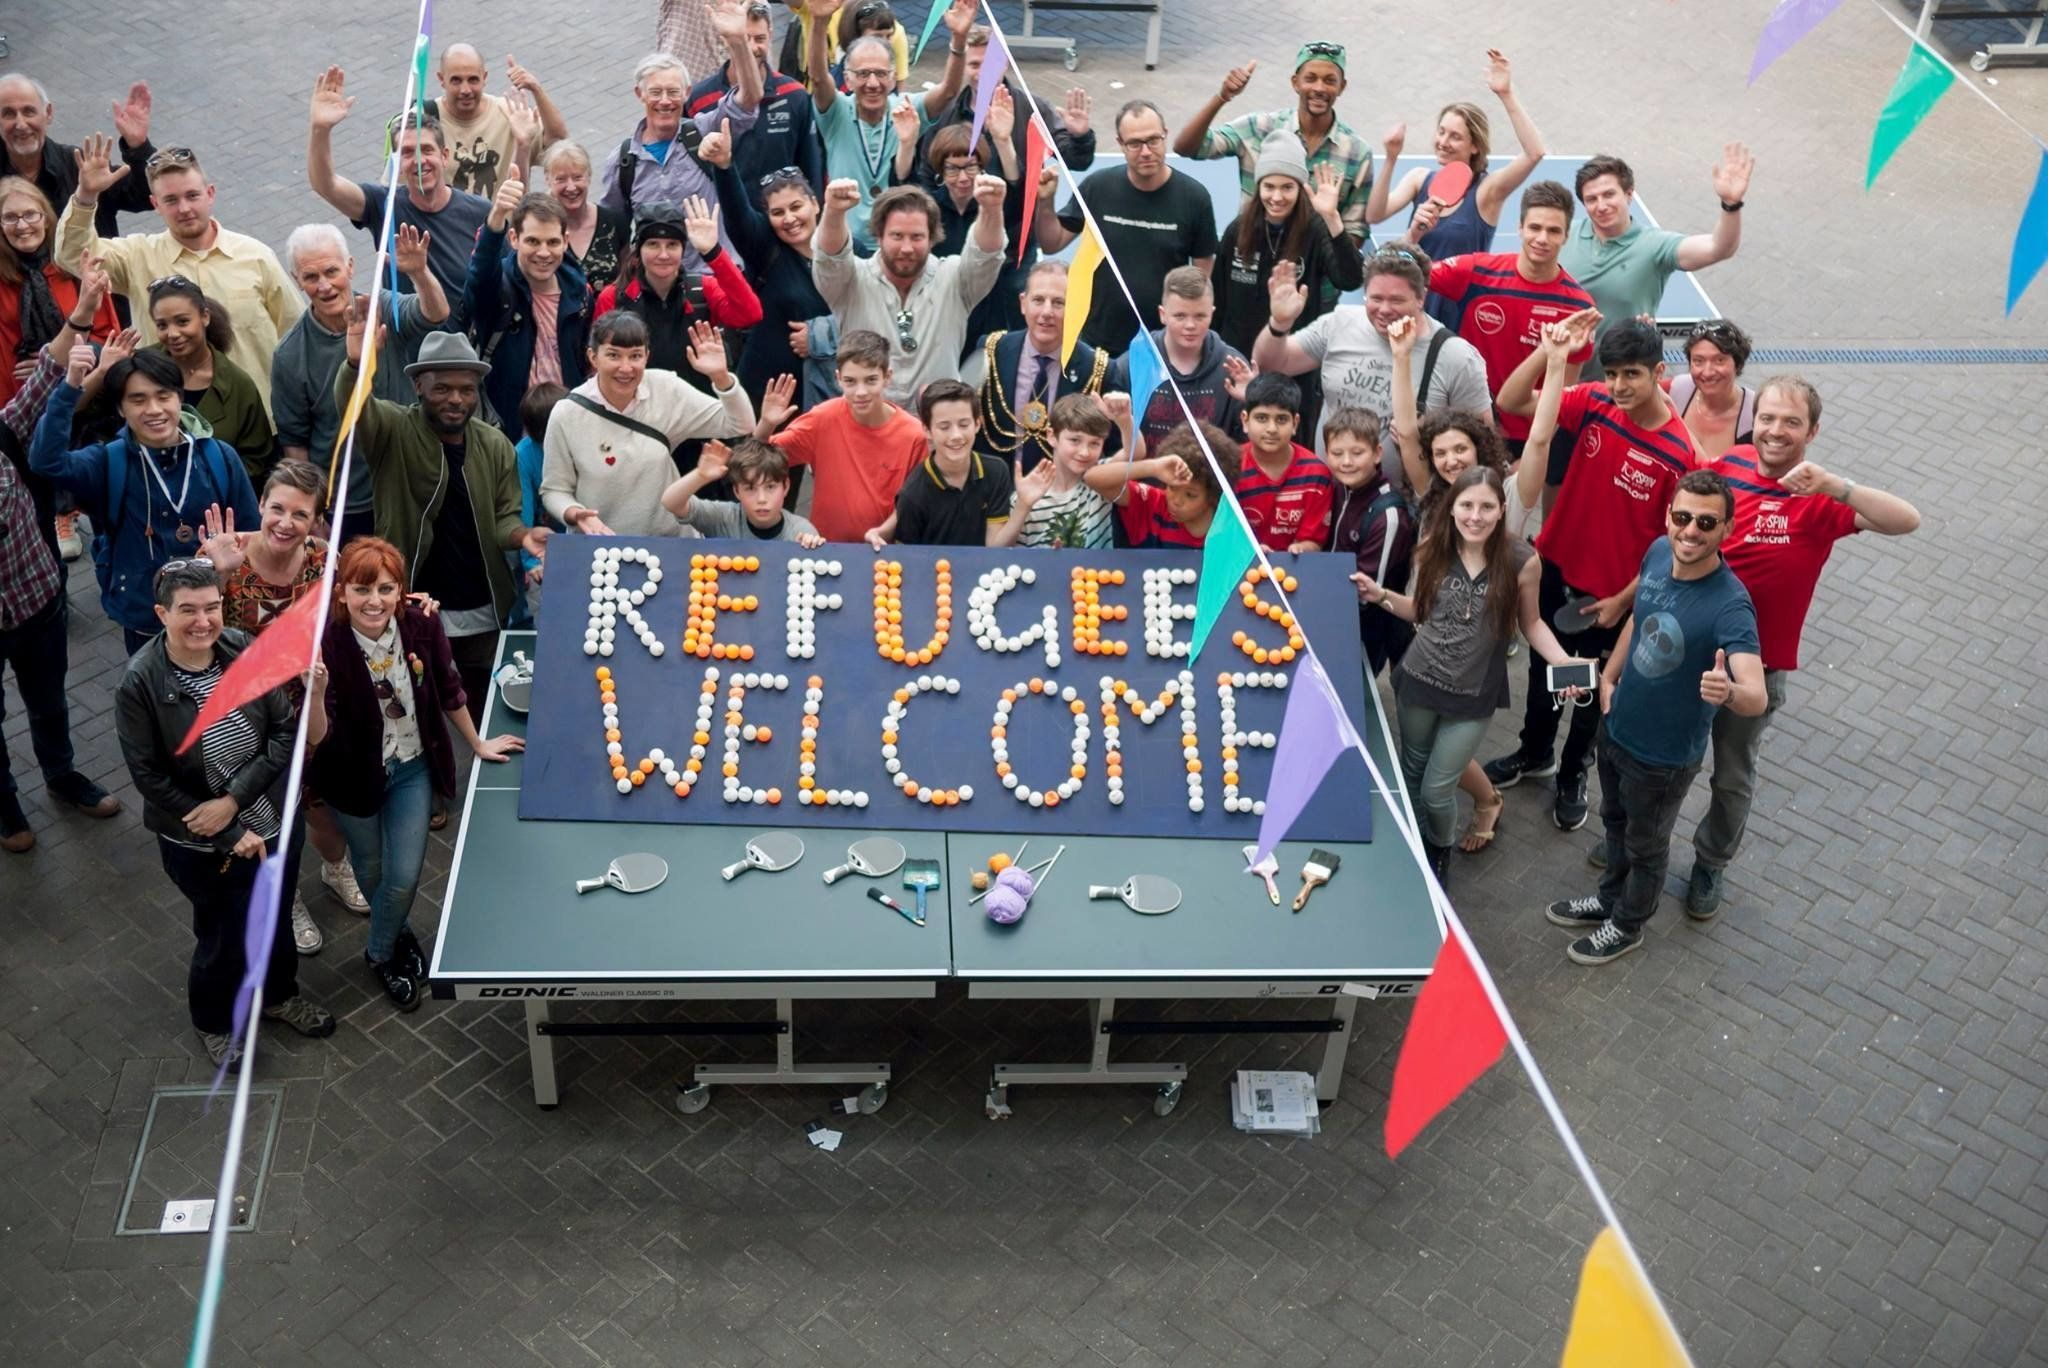 Meet The UK's First Table Tennis Club Of Sanctuary That's Giving A Masterclass In